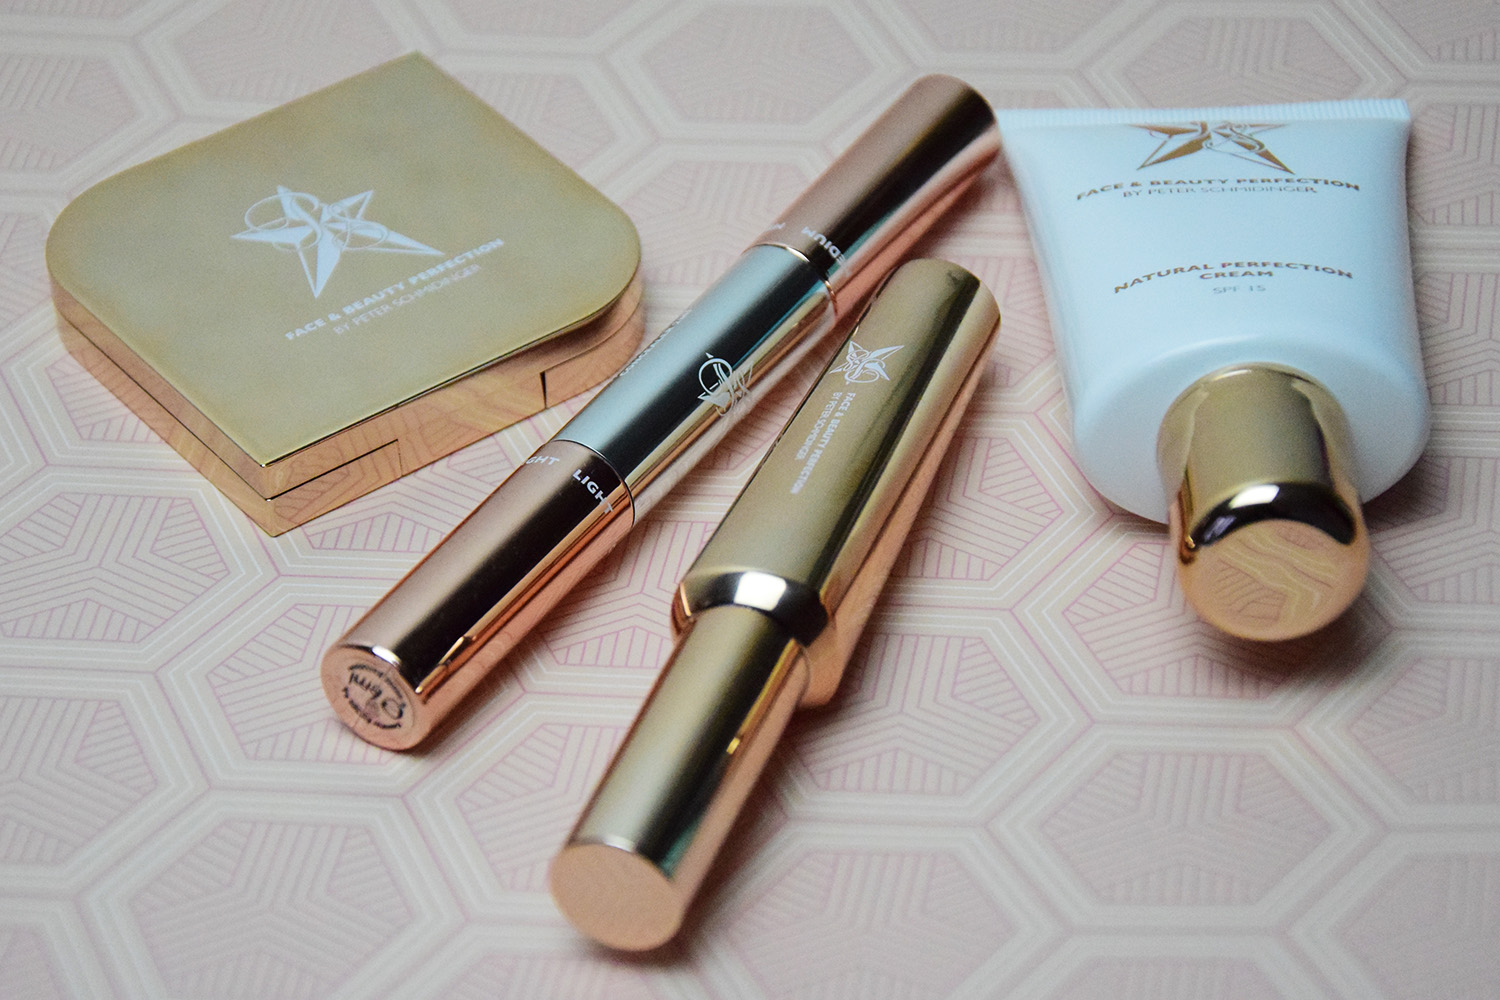 Advanceyourstyle Beautyblog Berlin Mondays Makeup Beauty Face And Beauty By Peter Schmidinger Meine Auswahl Star Bronzer Natural Perfection Cream Concealer Super.lash Mascara